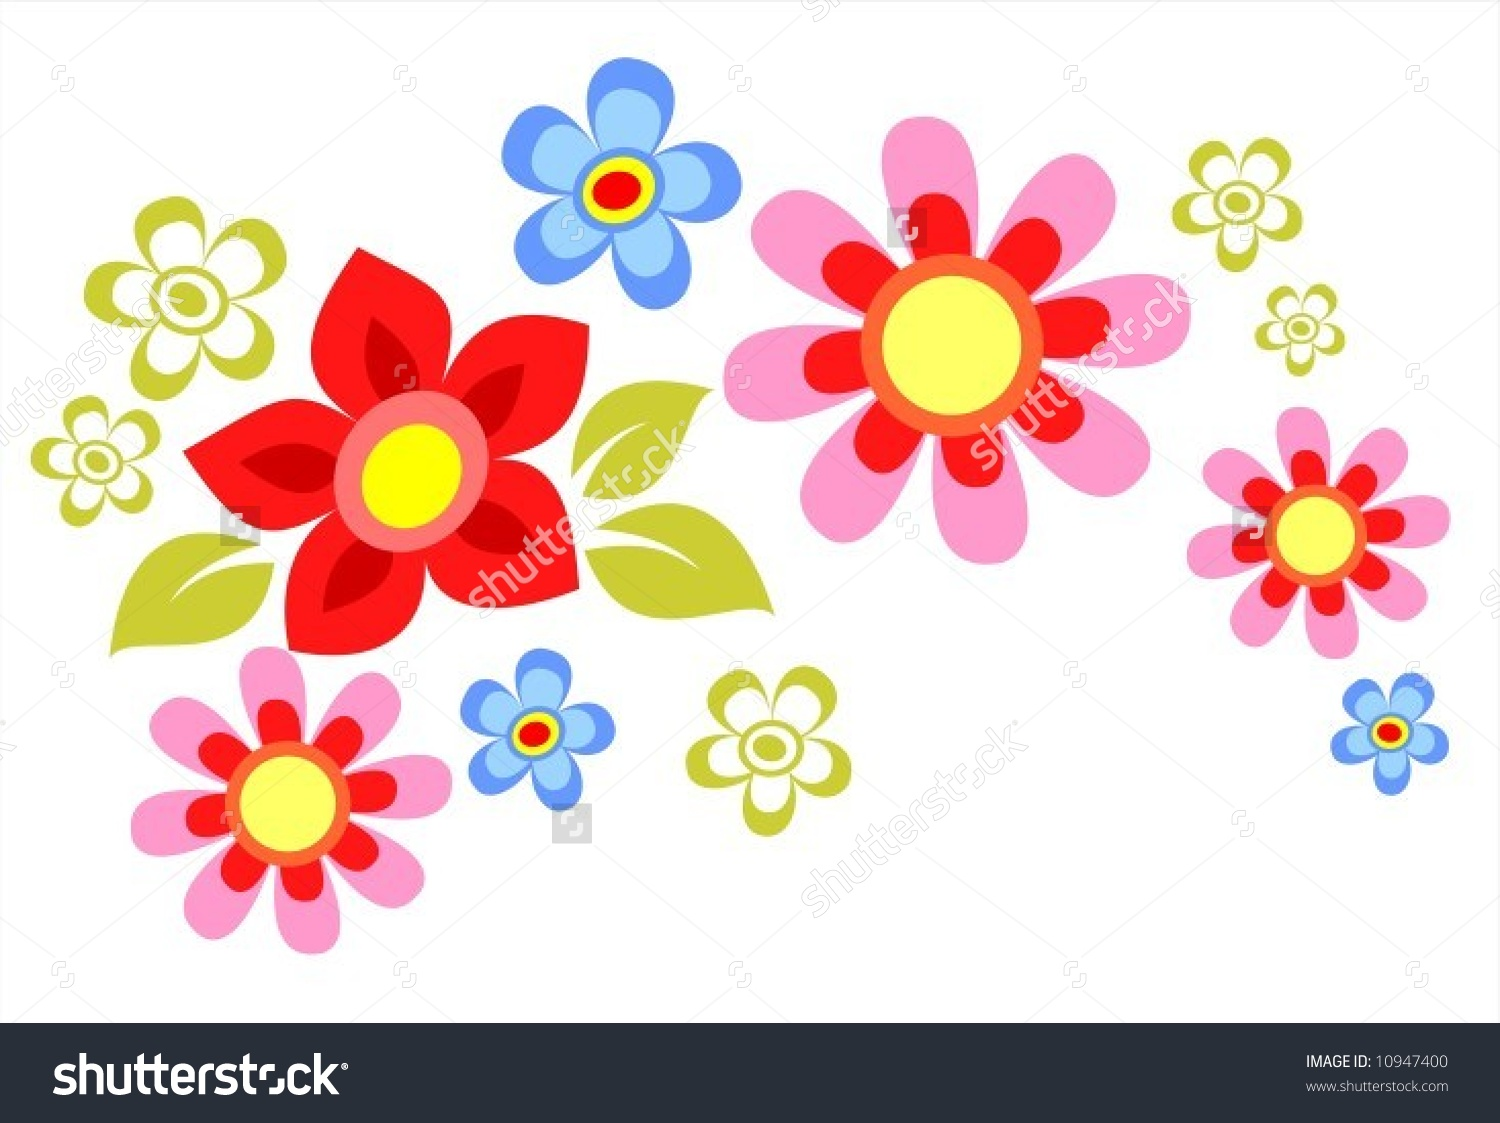 Photos of cartoon flowers clipart freeuse download Cartoon flower image - ClipartFest clipart freeuse download